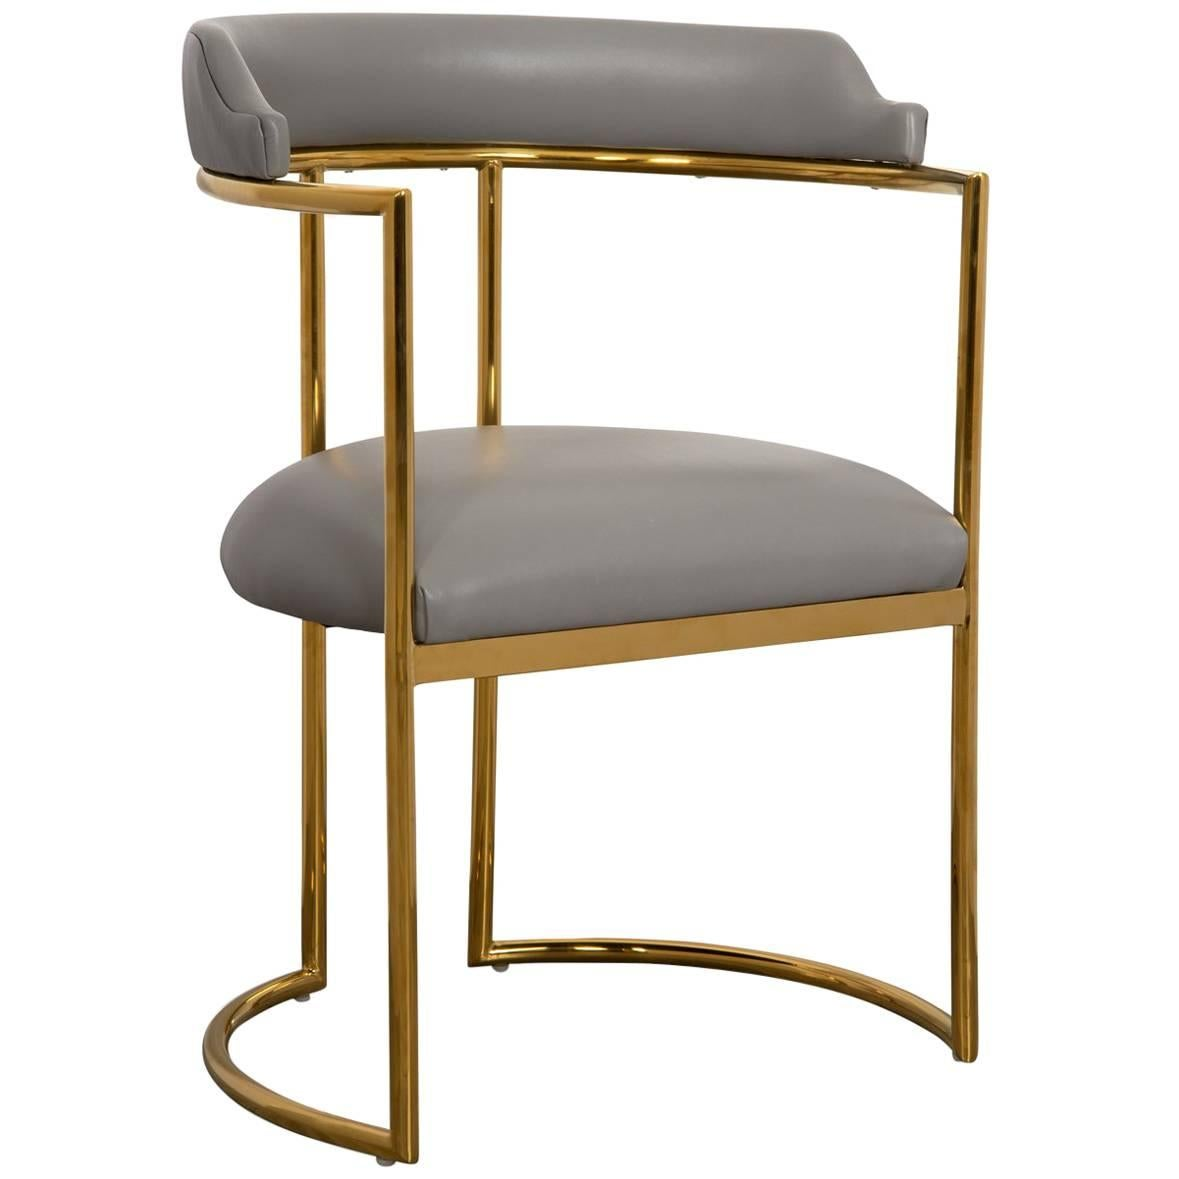 Exceptionnel Modern Curved Dining Chair In Grey Leather With Brass Frame Acapulco 2 For  Sale